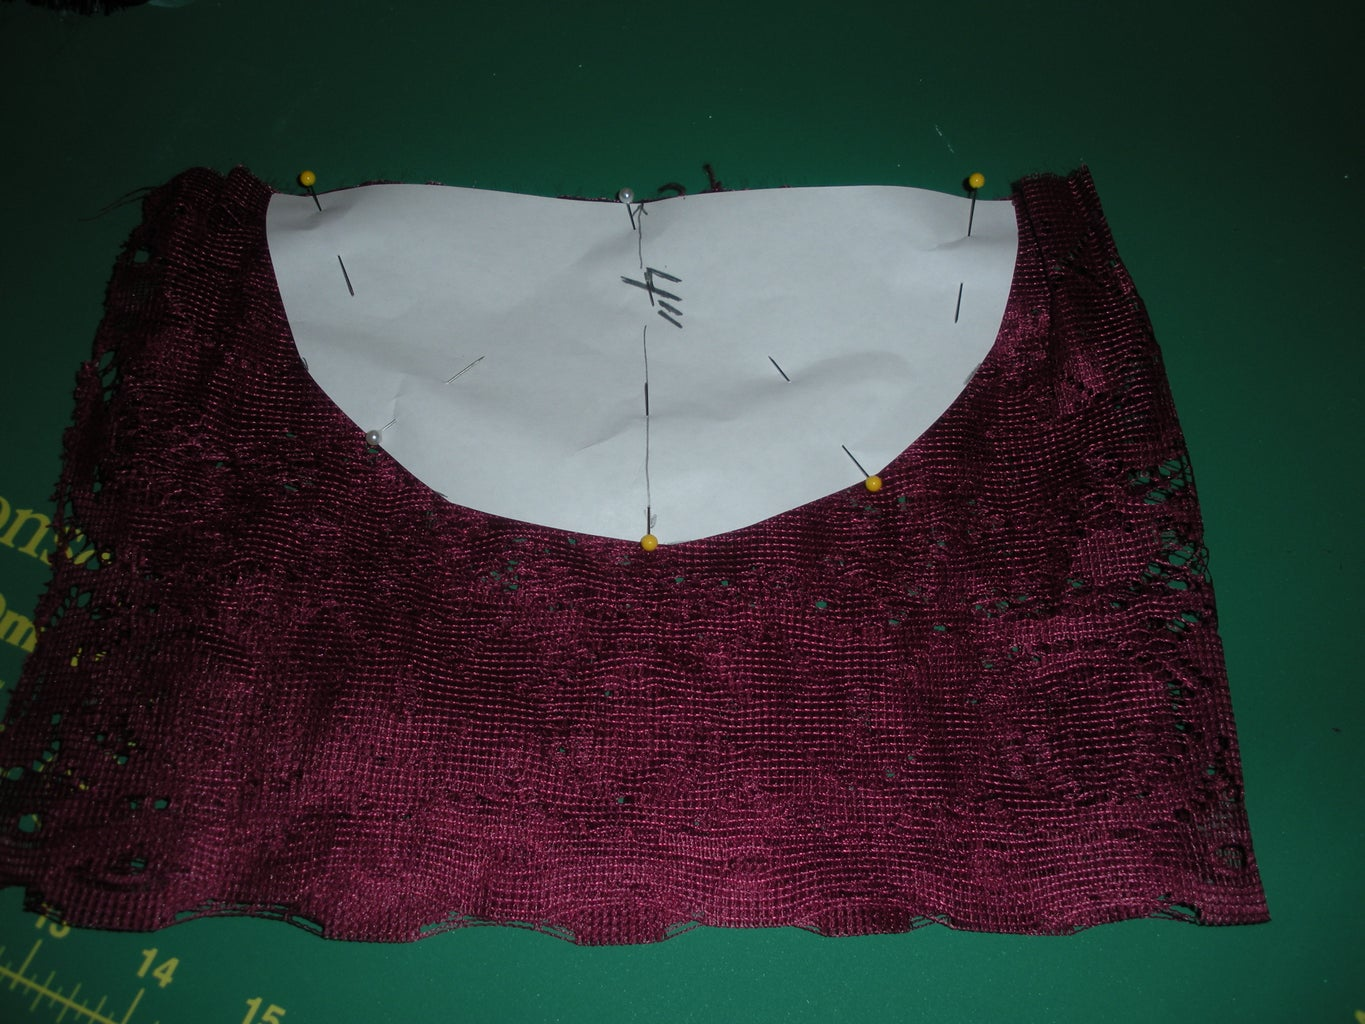 Step 2 - Cutting the Lace